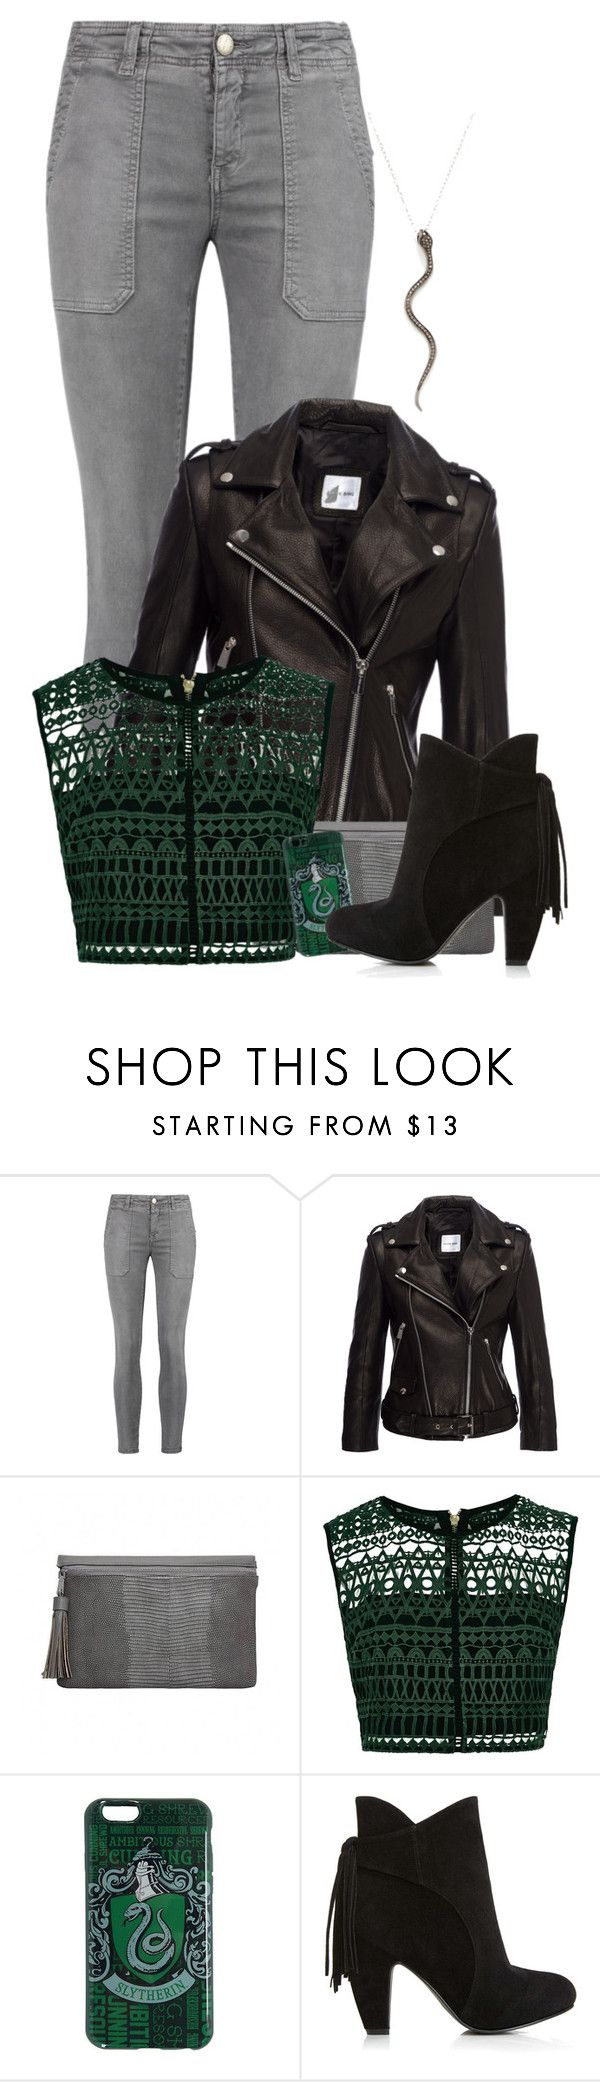 """Slytherin"" by charlizard ❤ liked on Polyvore featuring Current/Elliott, Anine Bing, River Island, Shay, harrypotter, slytherin, hogwarts, leatherjacket and fallfashion"